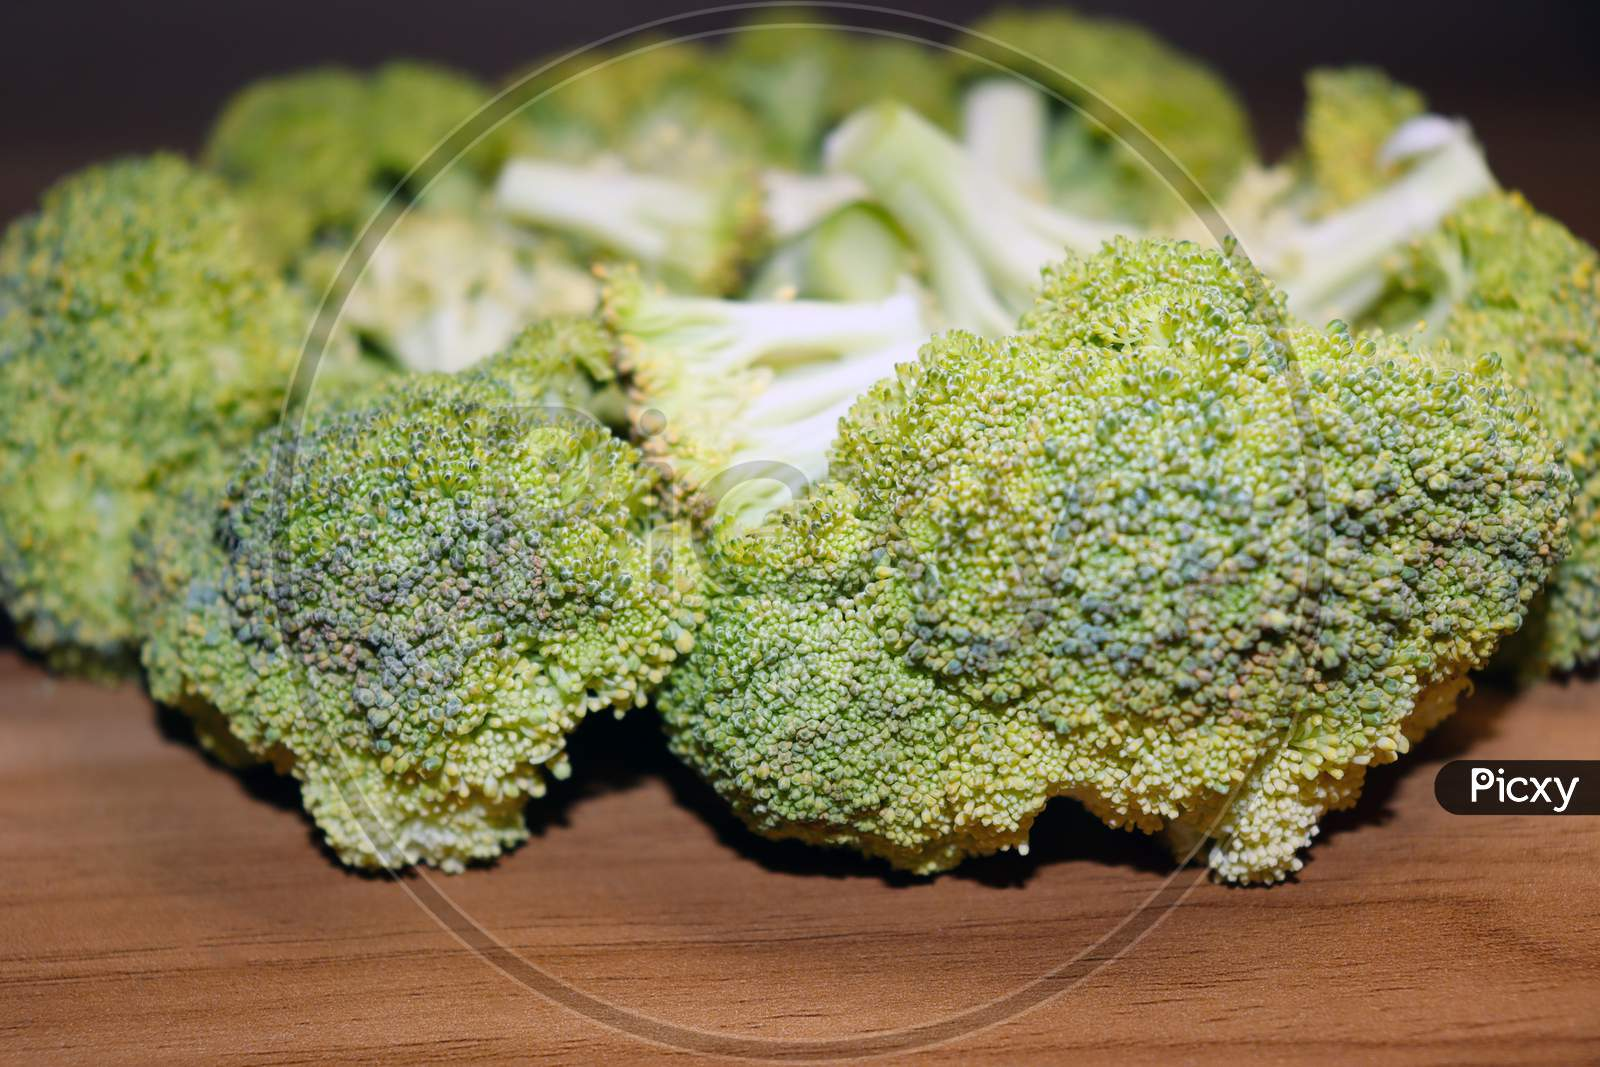 Sliced Broccoli Stock On Wooden Table